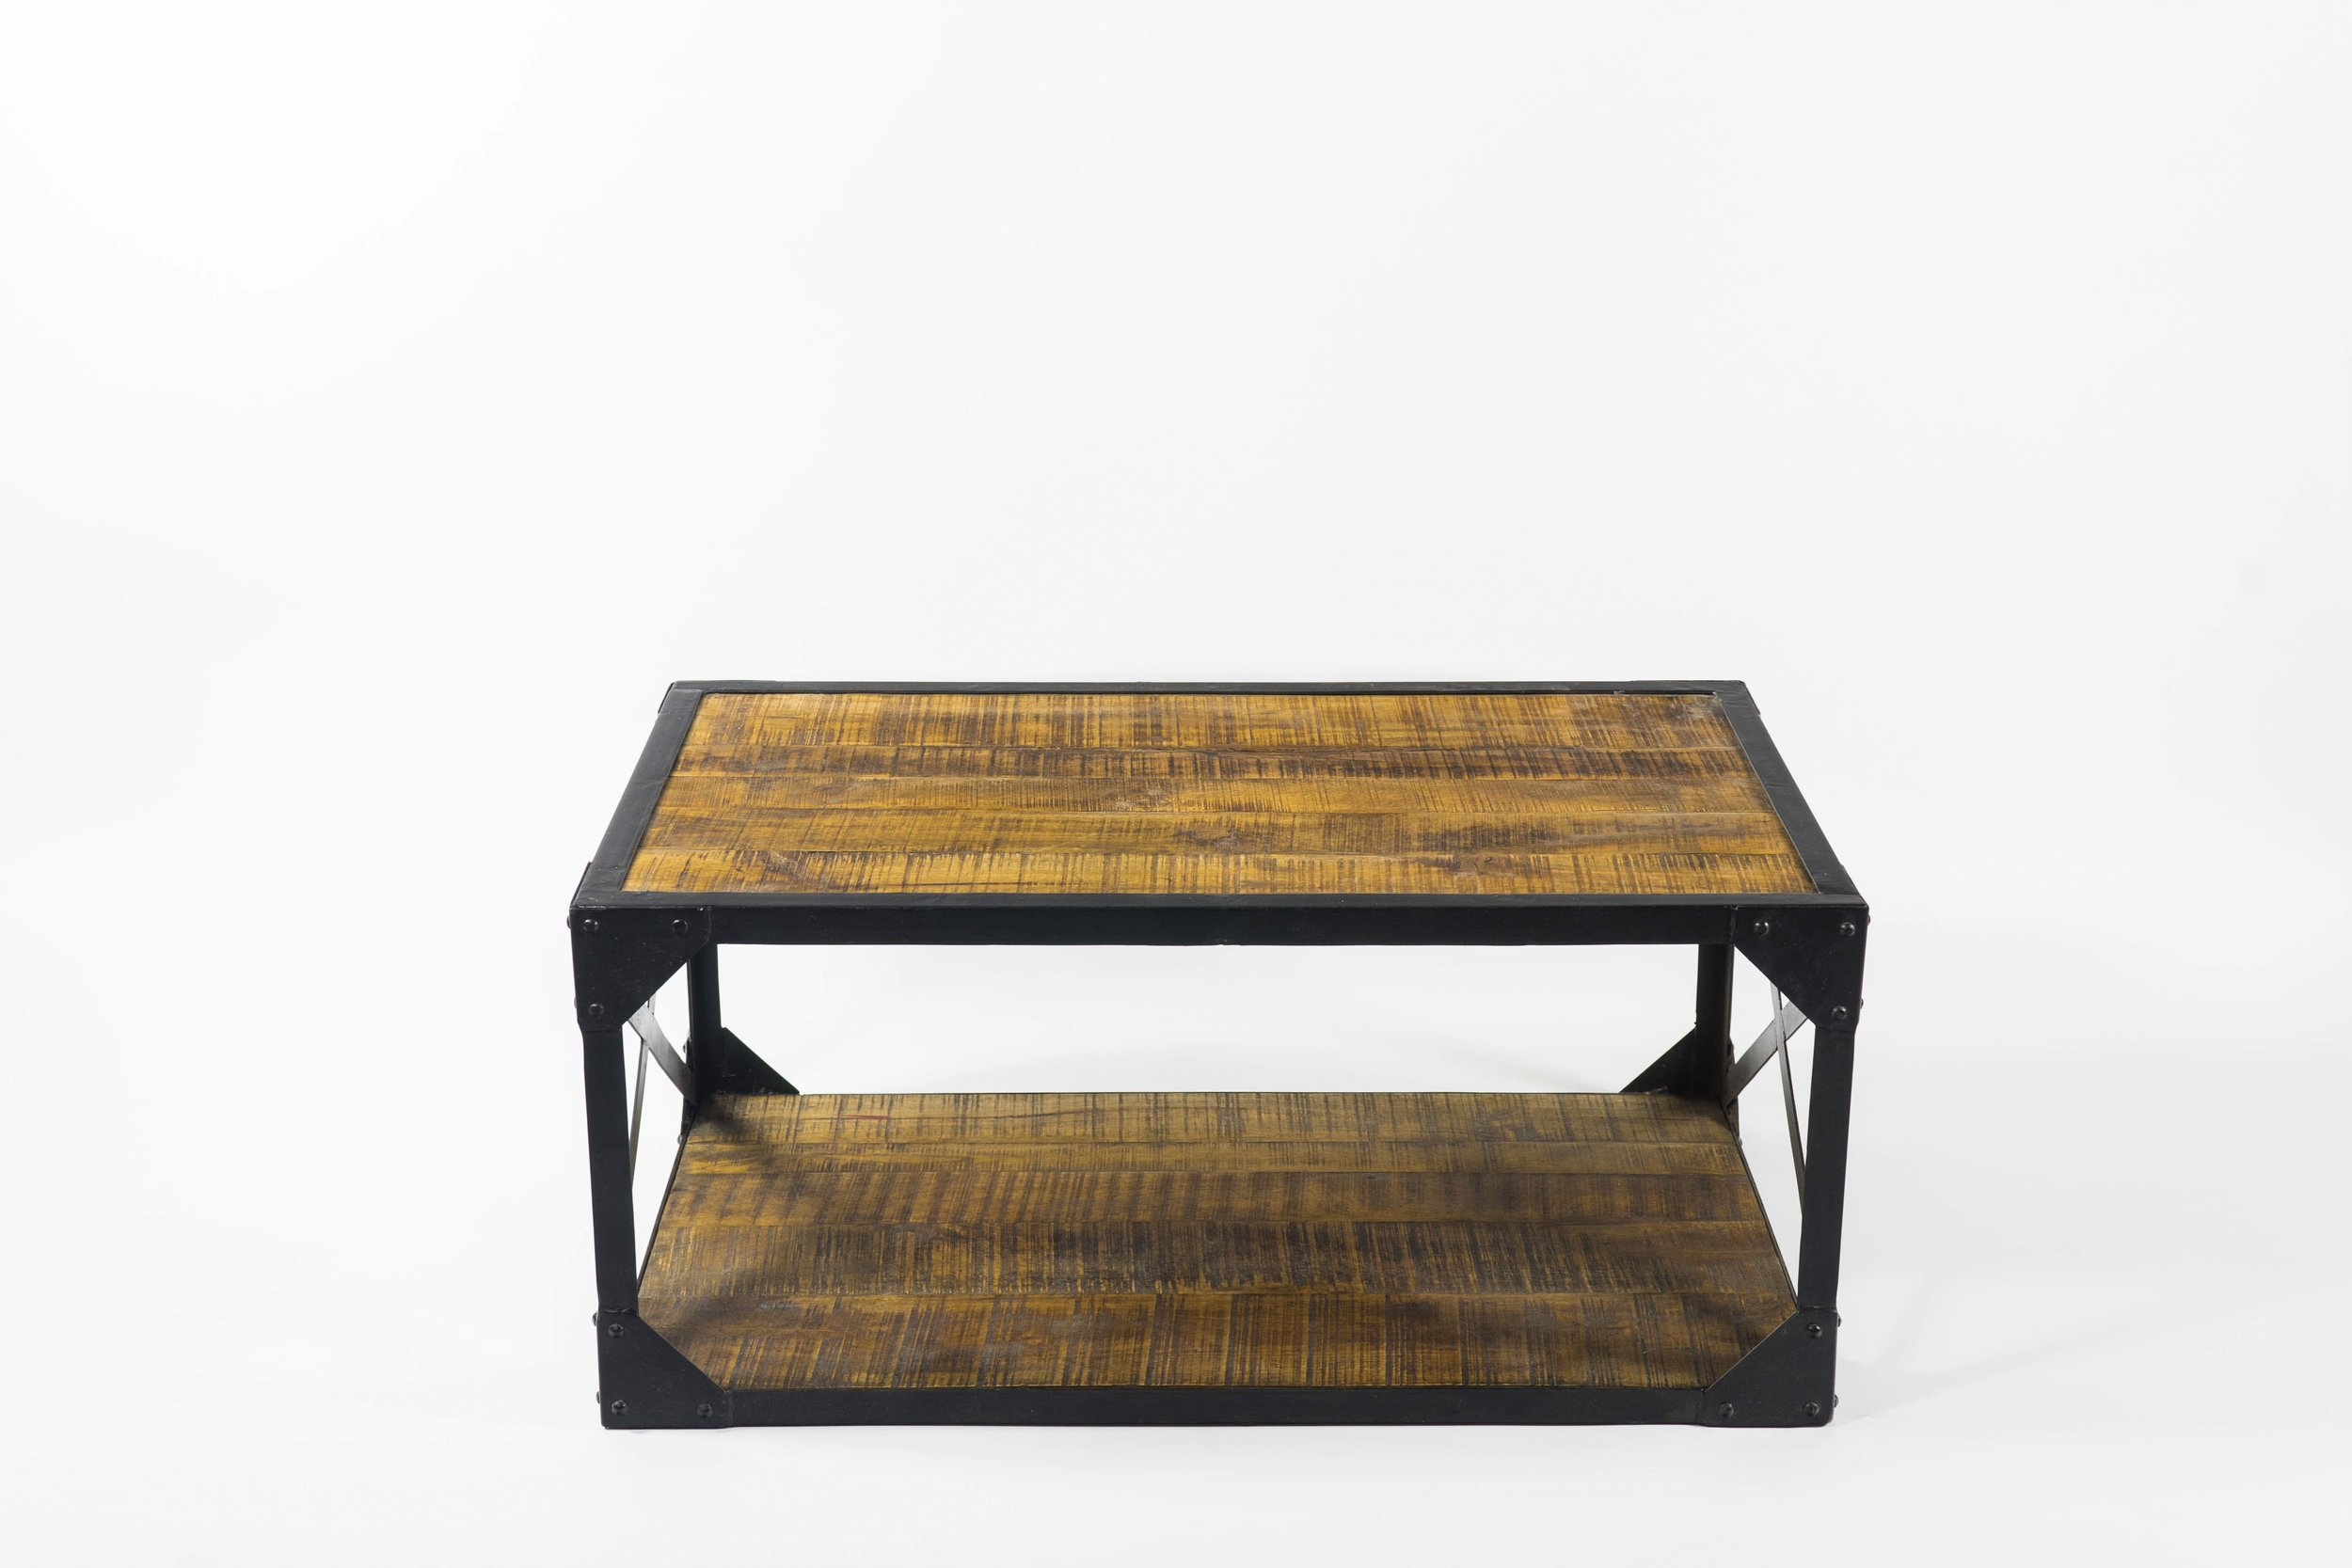 Stupendous Industrial Two Tiered Coffee Table Monarch Mallard Ocoug Best Dining Table And Chair Ideas Images Ocougorg